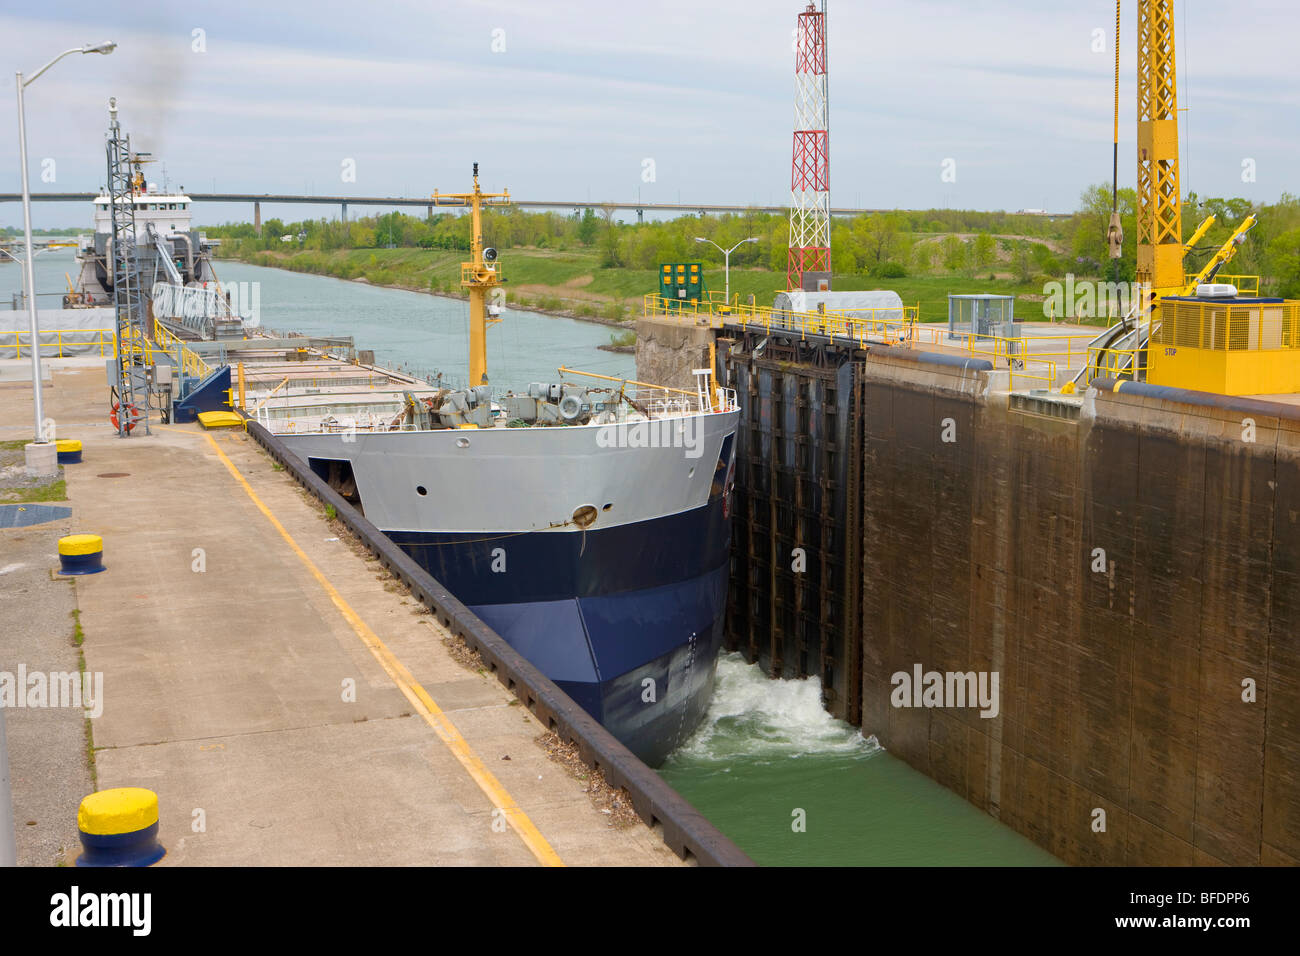 Large bulk carrier ship  Welland Canals Centre, Great Lakes-St. Lawrence Seaway, St. Catharines, Ontario, Canada - Stock Image